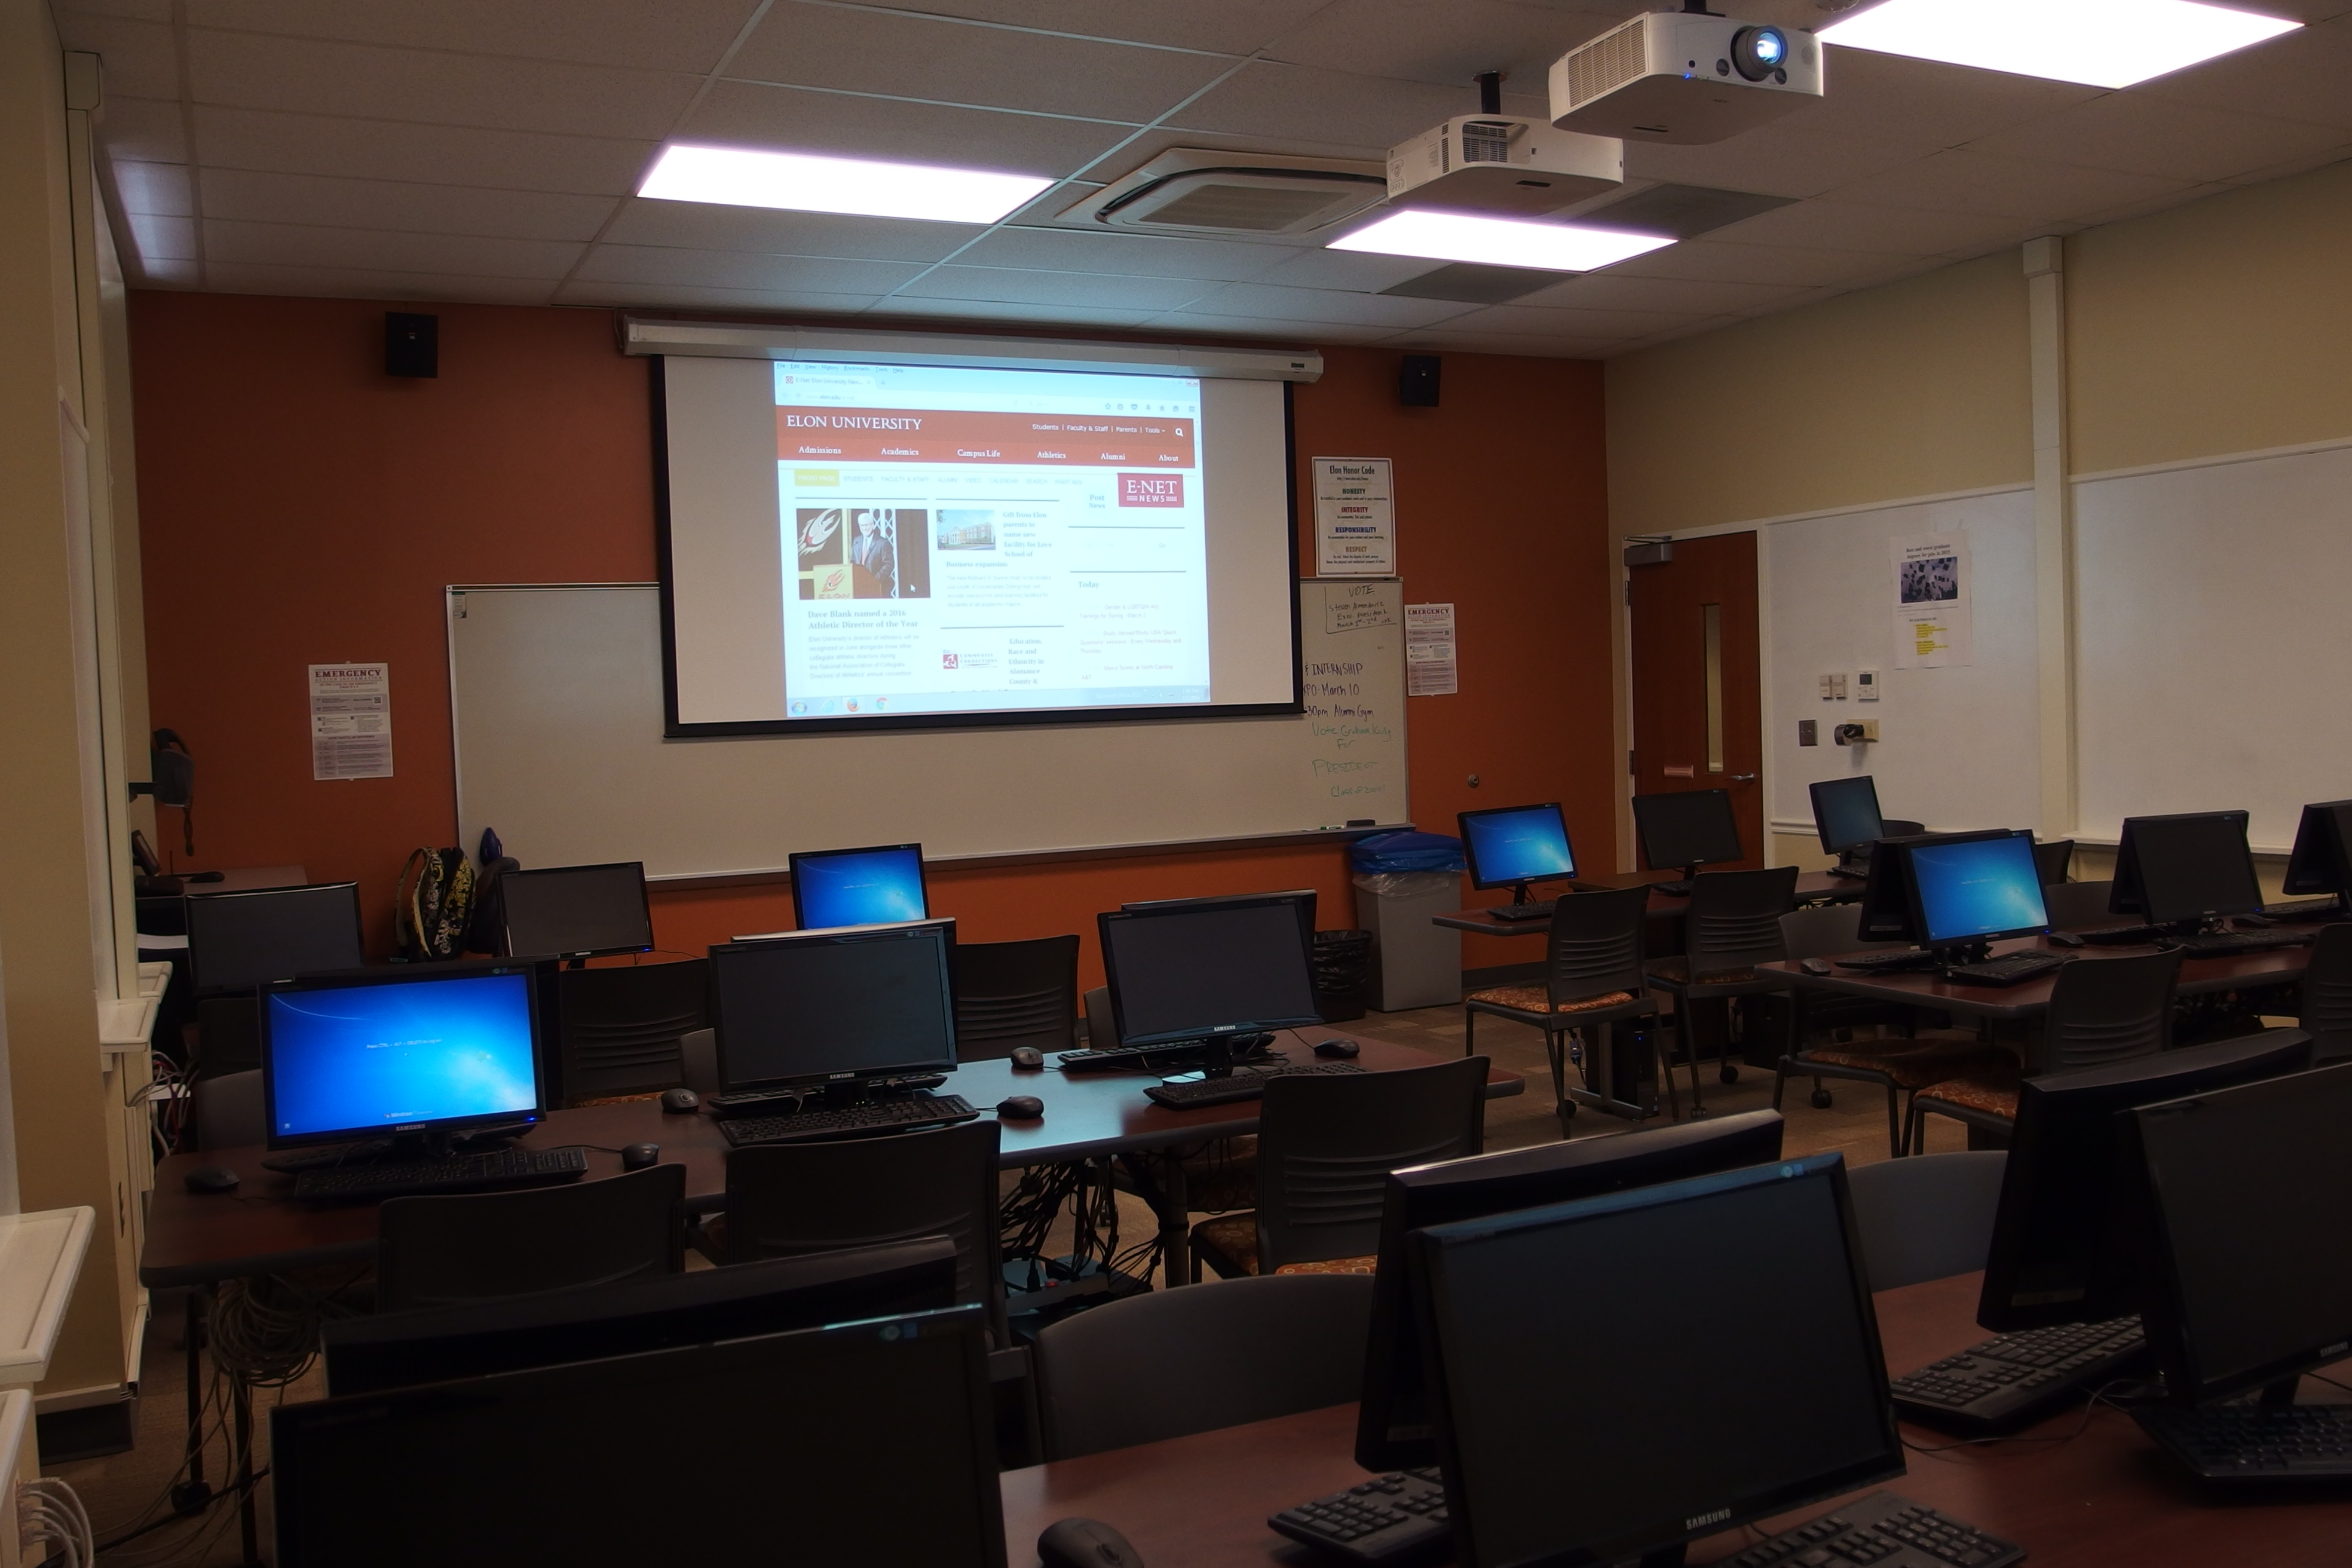 Photo of classroom taken from the back right corner and includes projection screen, student work stations, exit, white boards and instructor station